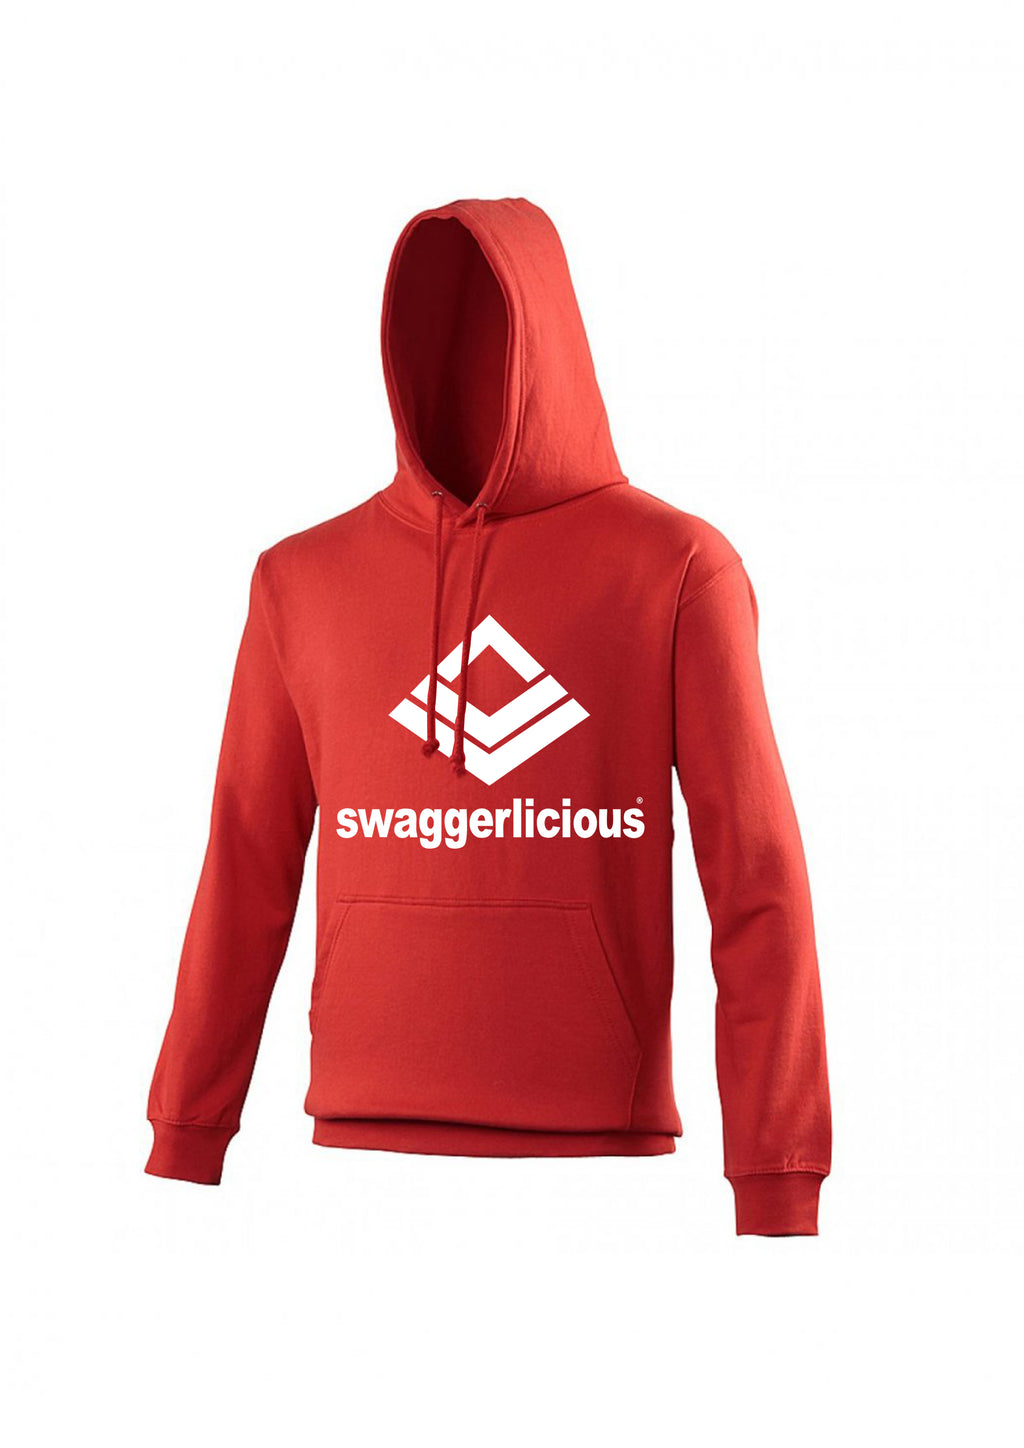 Swaggerlicious Classic Sports Red Hoodie - swaggerlicious-clothing.com